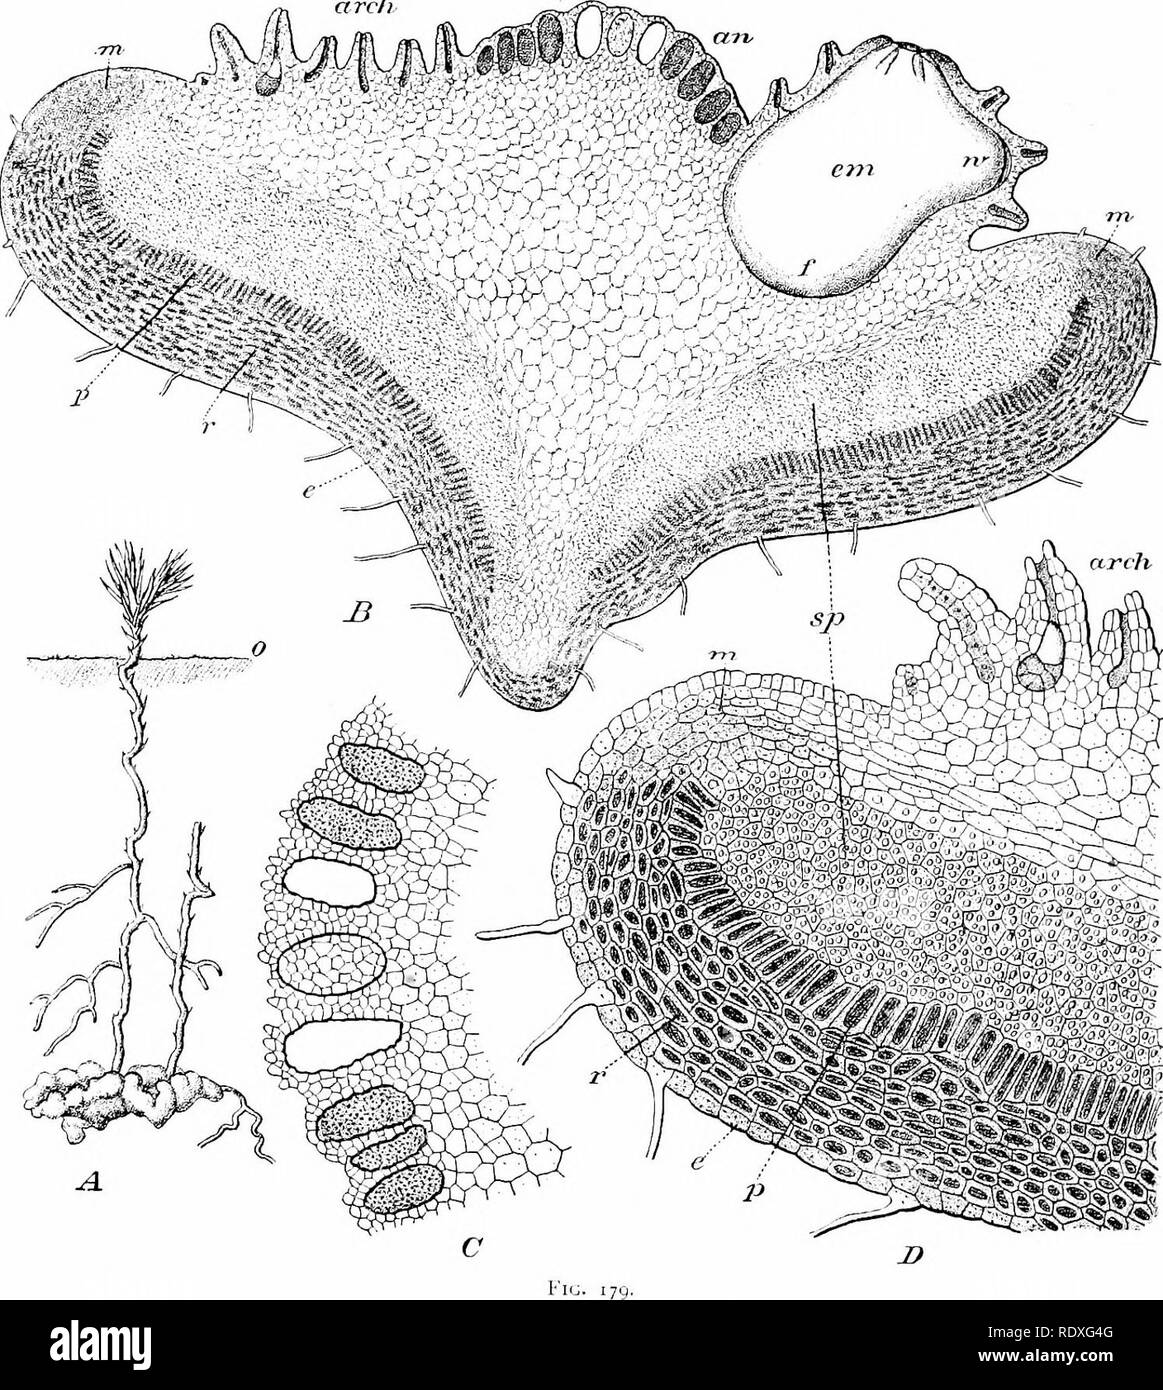 The origin of a land flora, a theory based upon the facts of